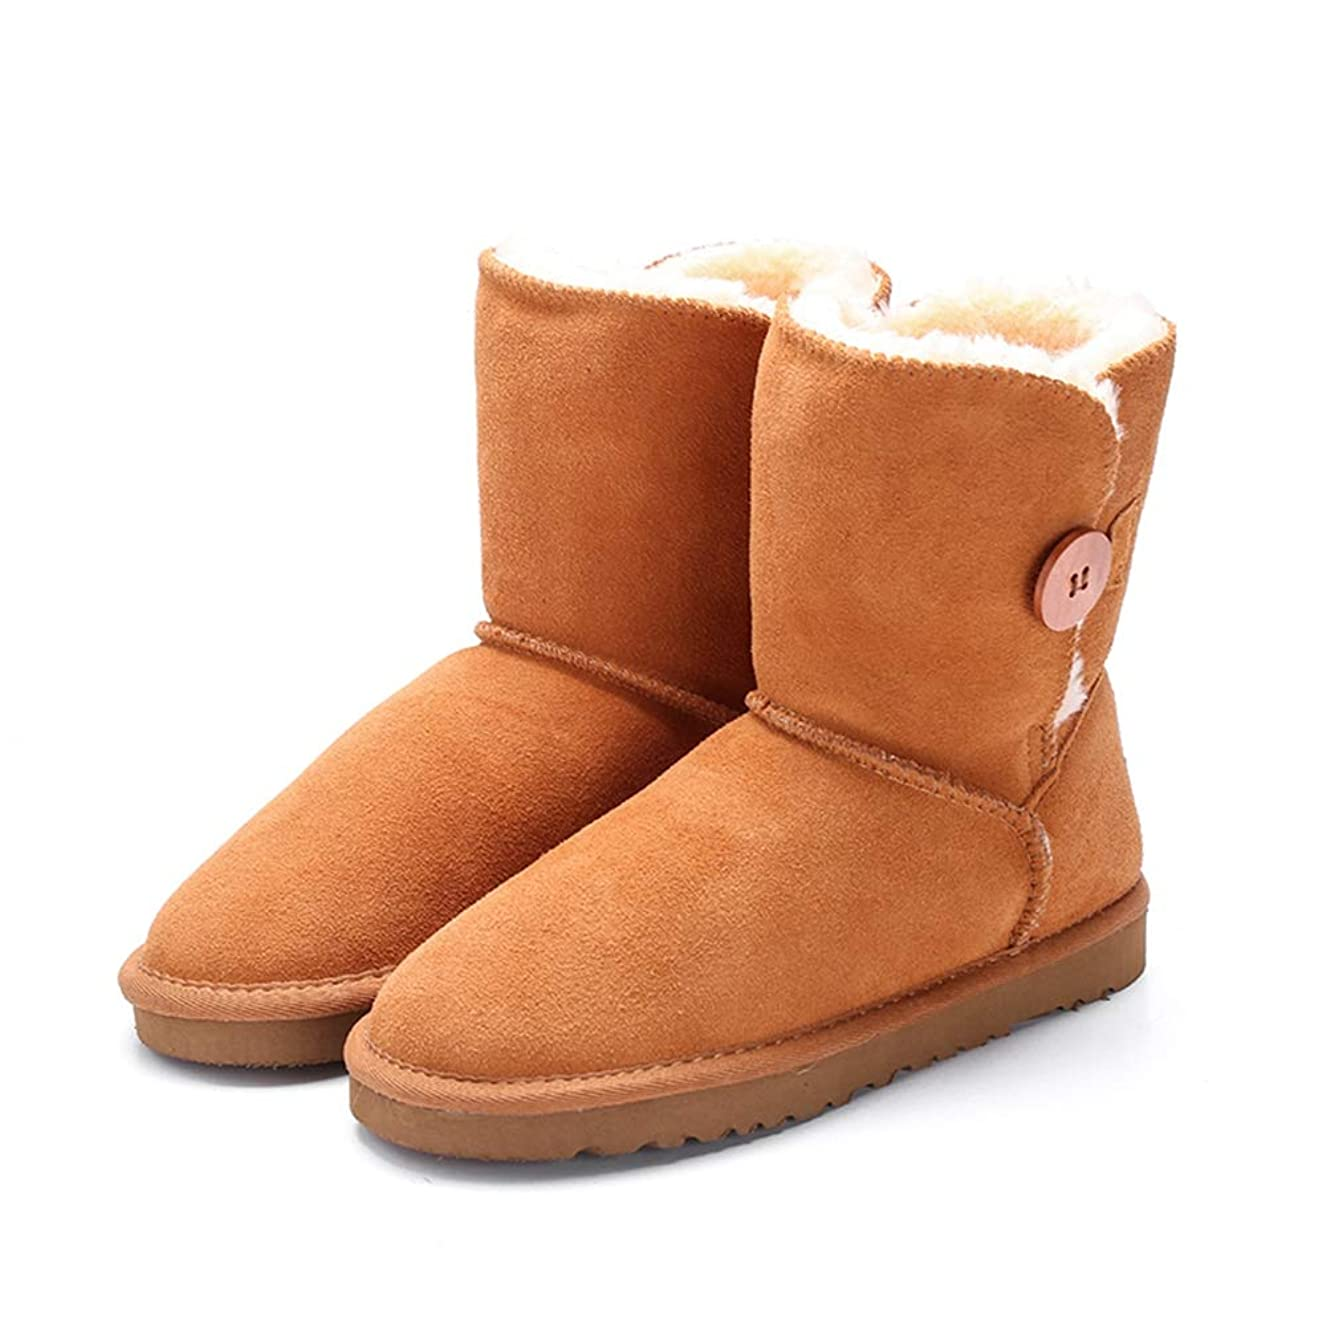 Women's Mid-Calf Snow Boots Fashion Genuine Leather with Buckle Winter Plush Solid Flat Boots Shoes